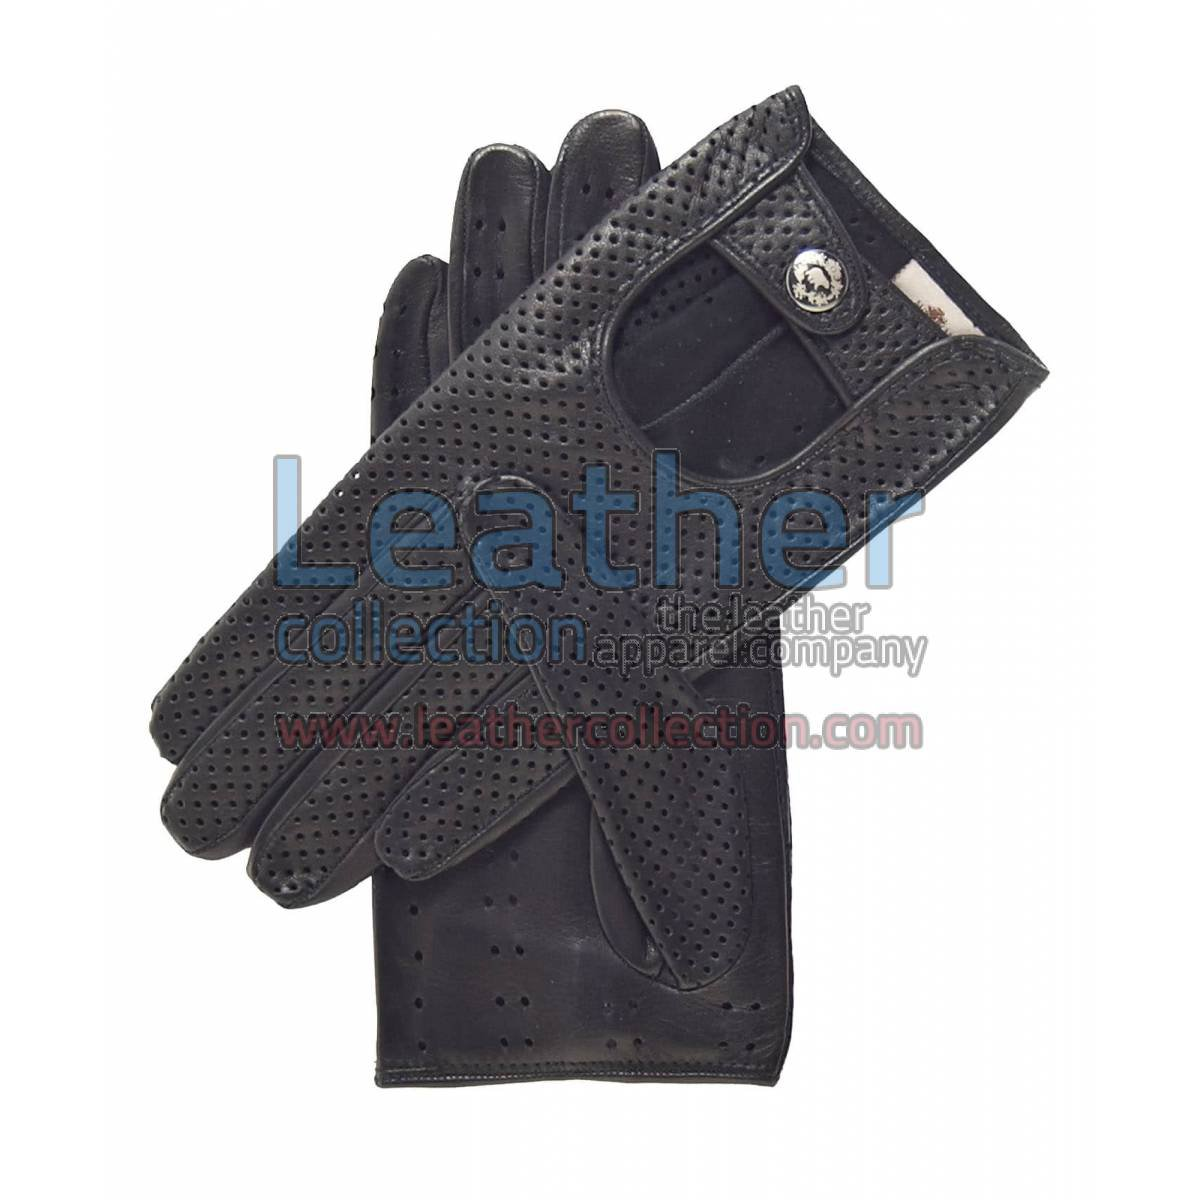 Ladies Summer Ventilated Black Driving Gloves